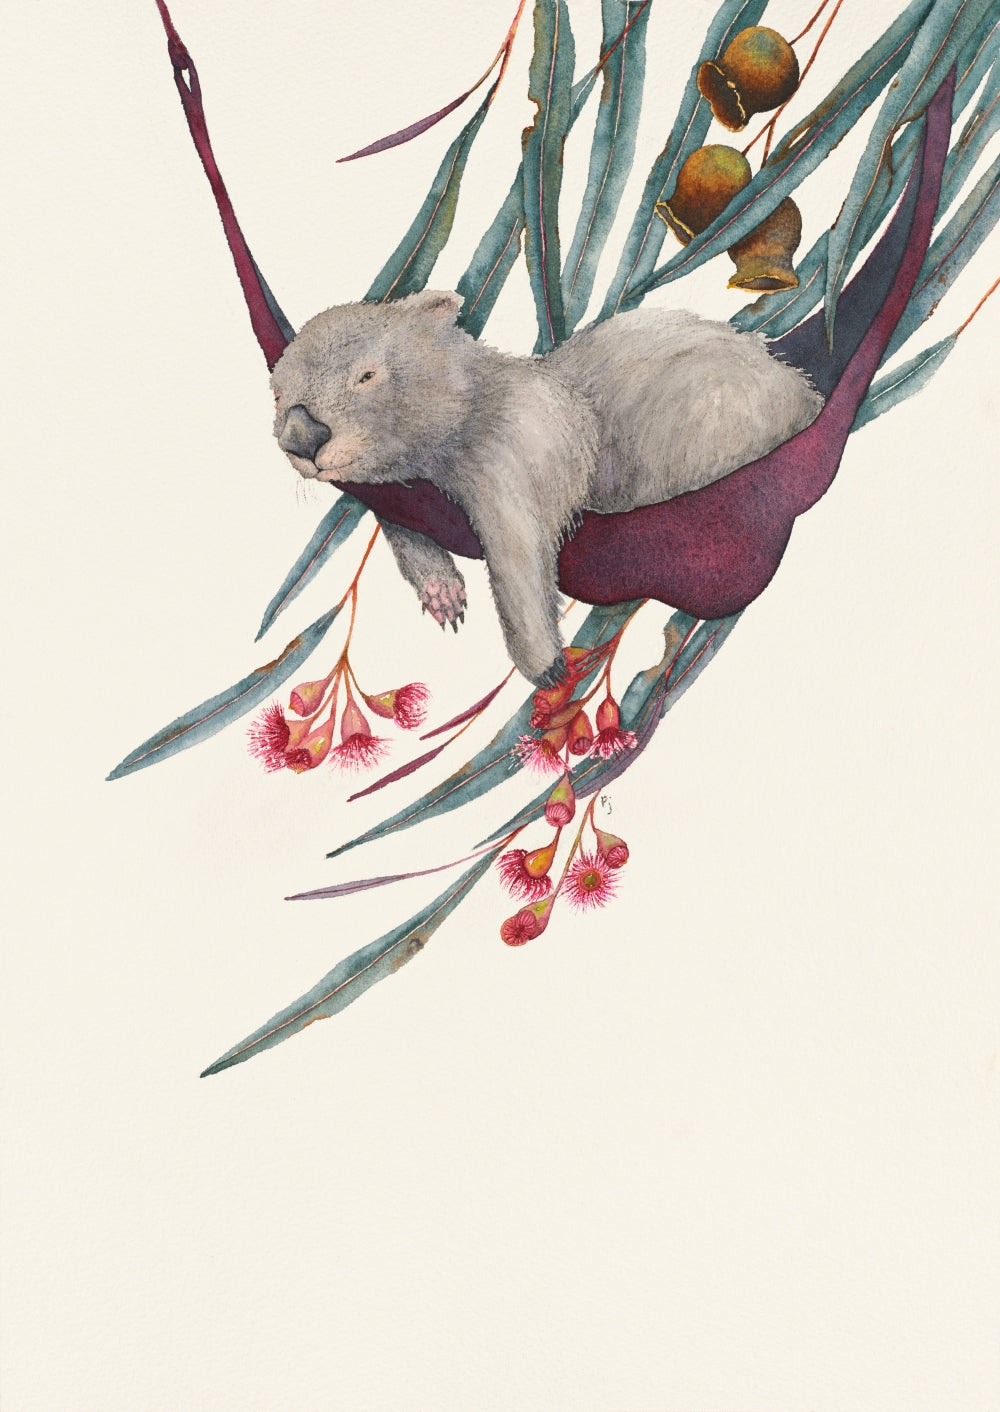 This is a watercolour painting of a thoroughly relaxed and mellow little wombat in its hammock enjoying the gentle breeze and shade of an Australian gum tree.